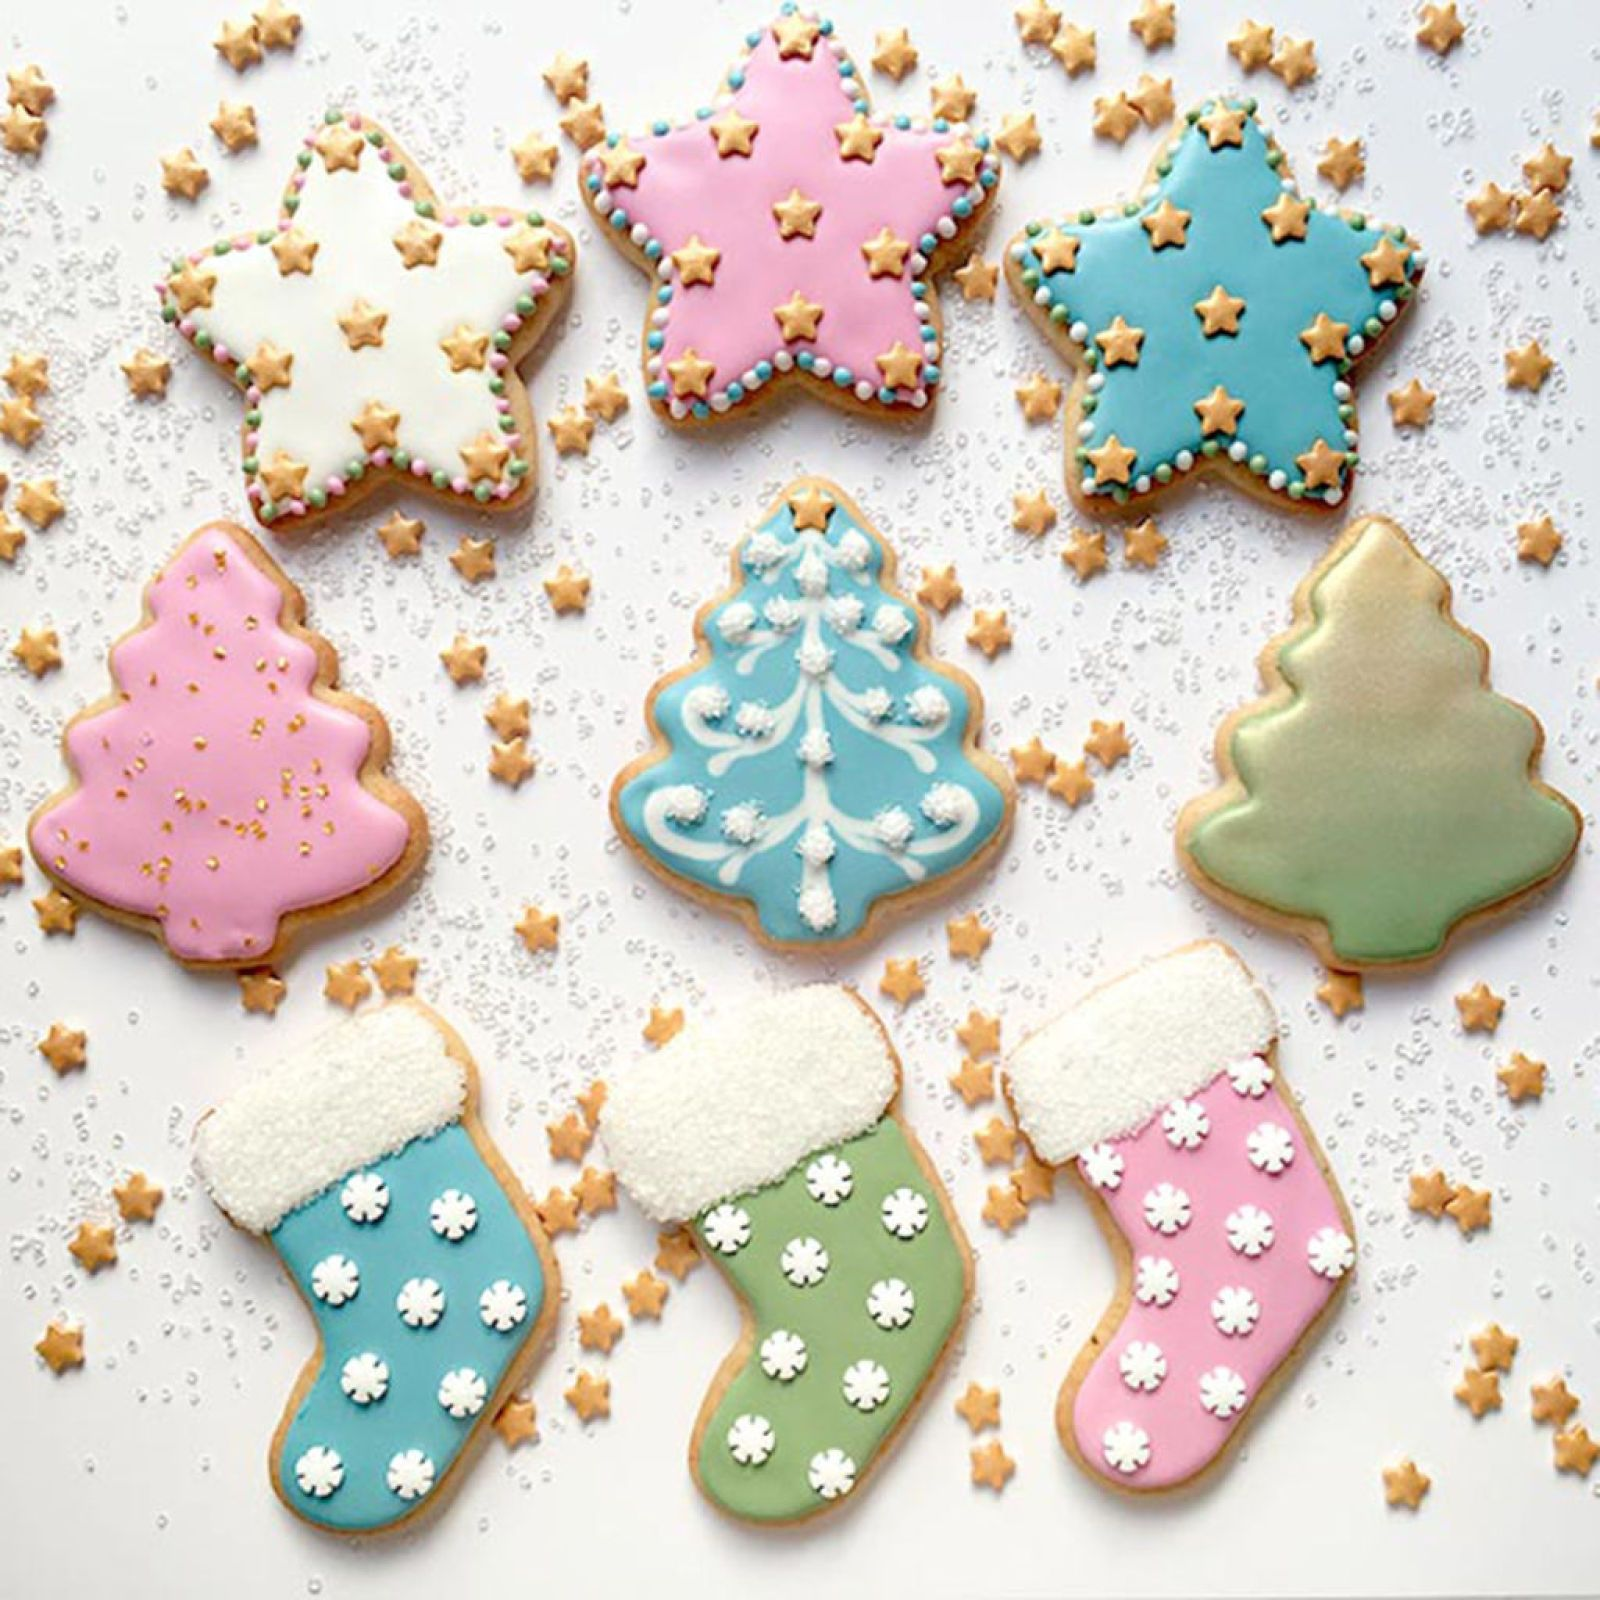 Sweetambs Holiday Cookie Holiday Cookie Recipes Ideas Cookies